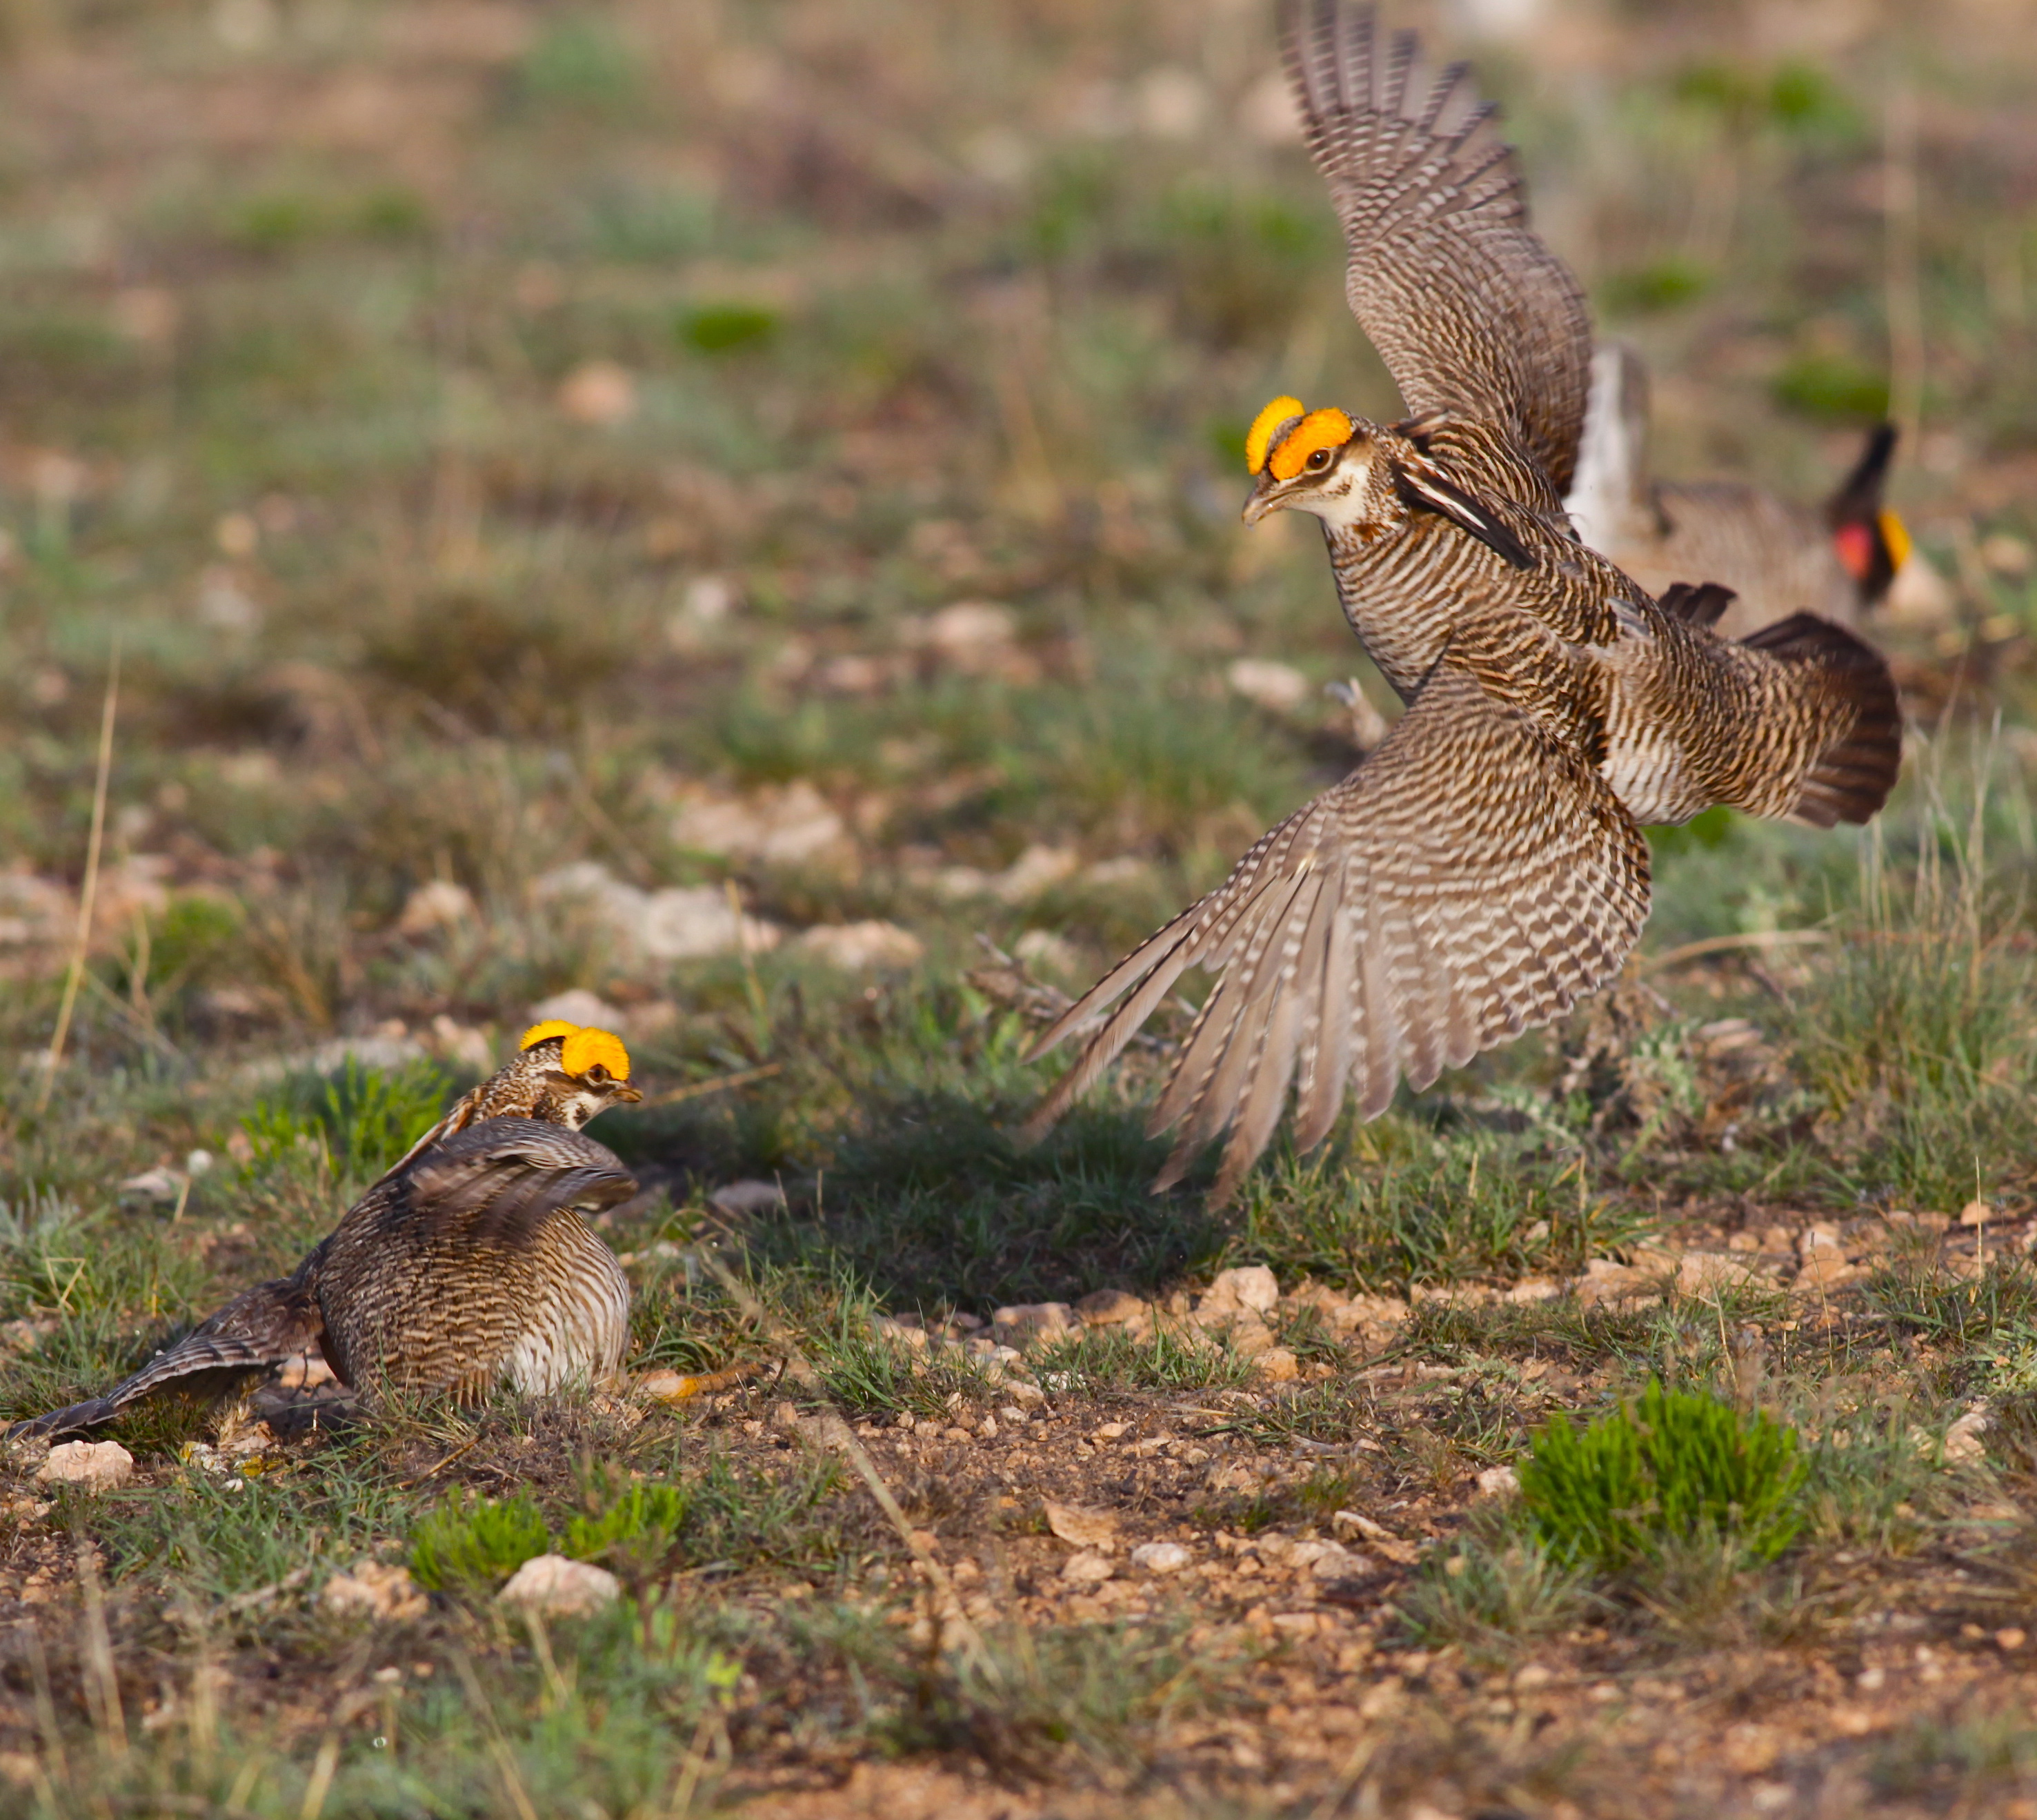 The lesser prairie-chicken is a grassland-nesting bird of the southern Great Plains. Photo by Linda